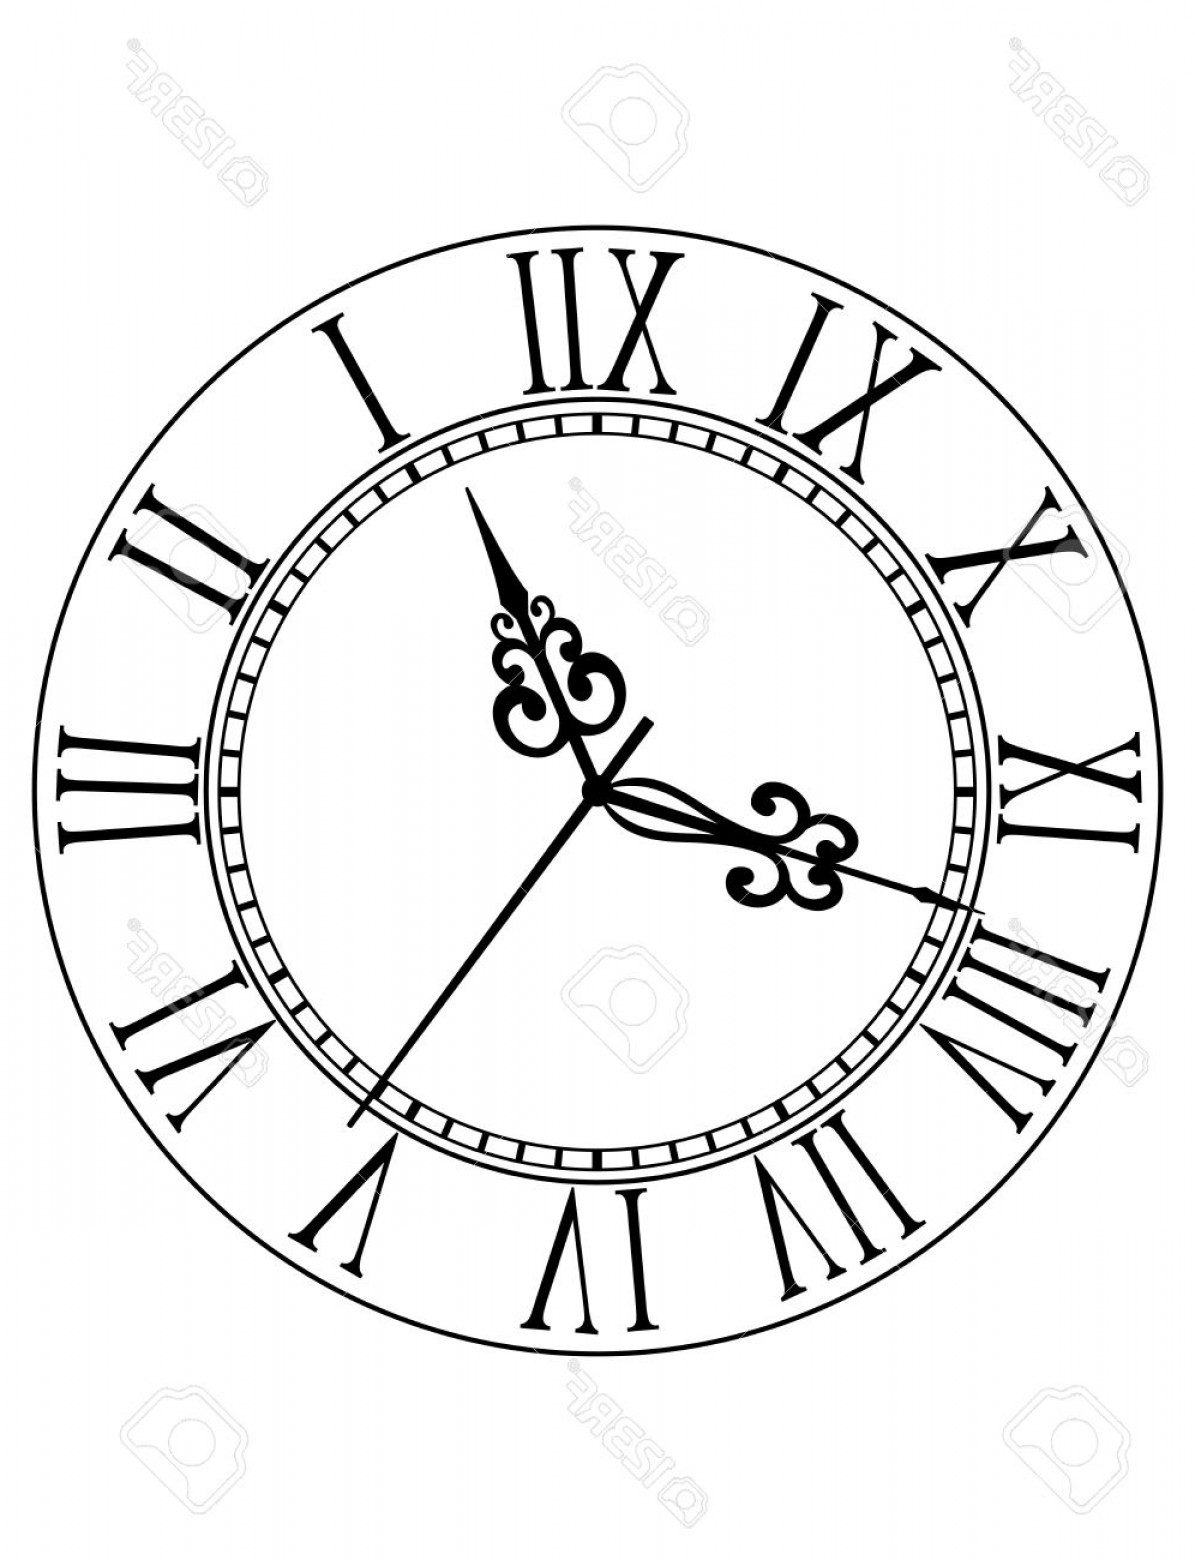 Roman Numeral Clock Face Vector At Vectorified